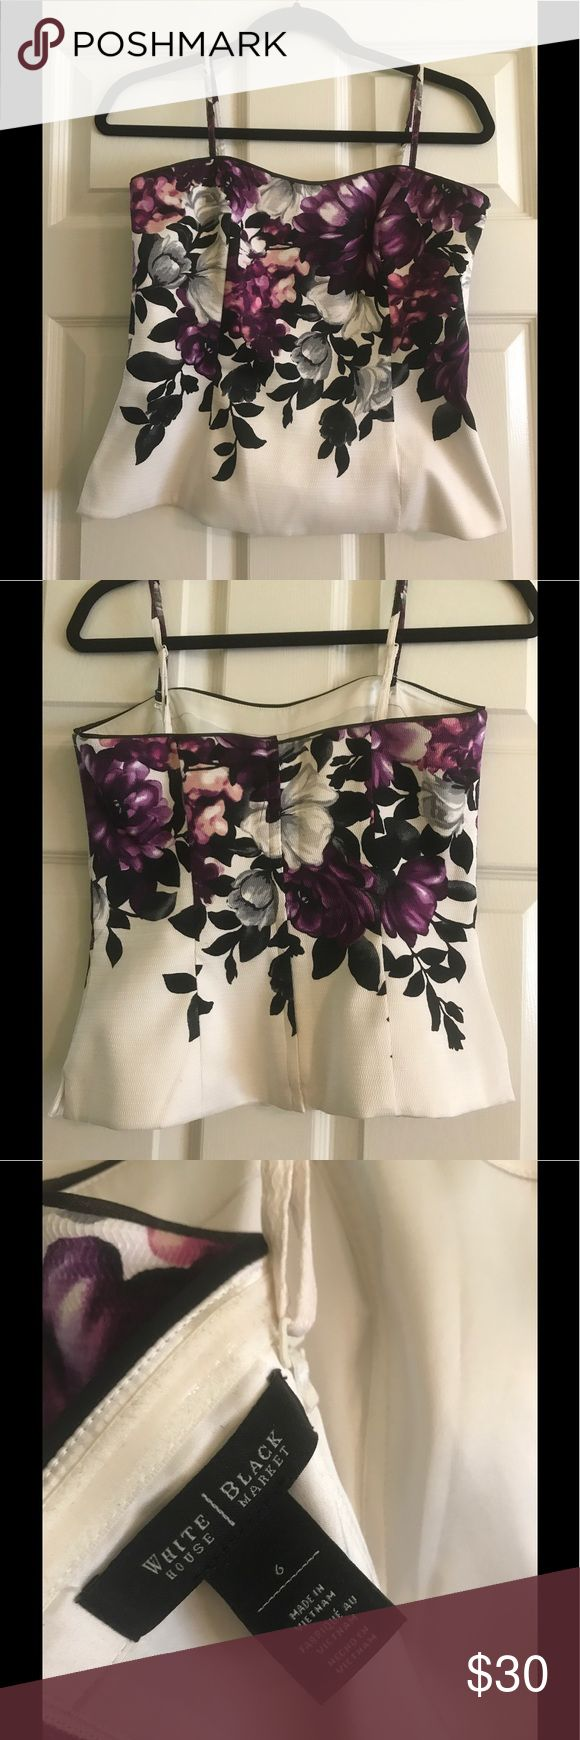 White House Black Market corset top White corset top with beautiful purple flowers. White House Black Market Tops